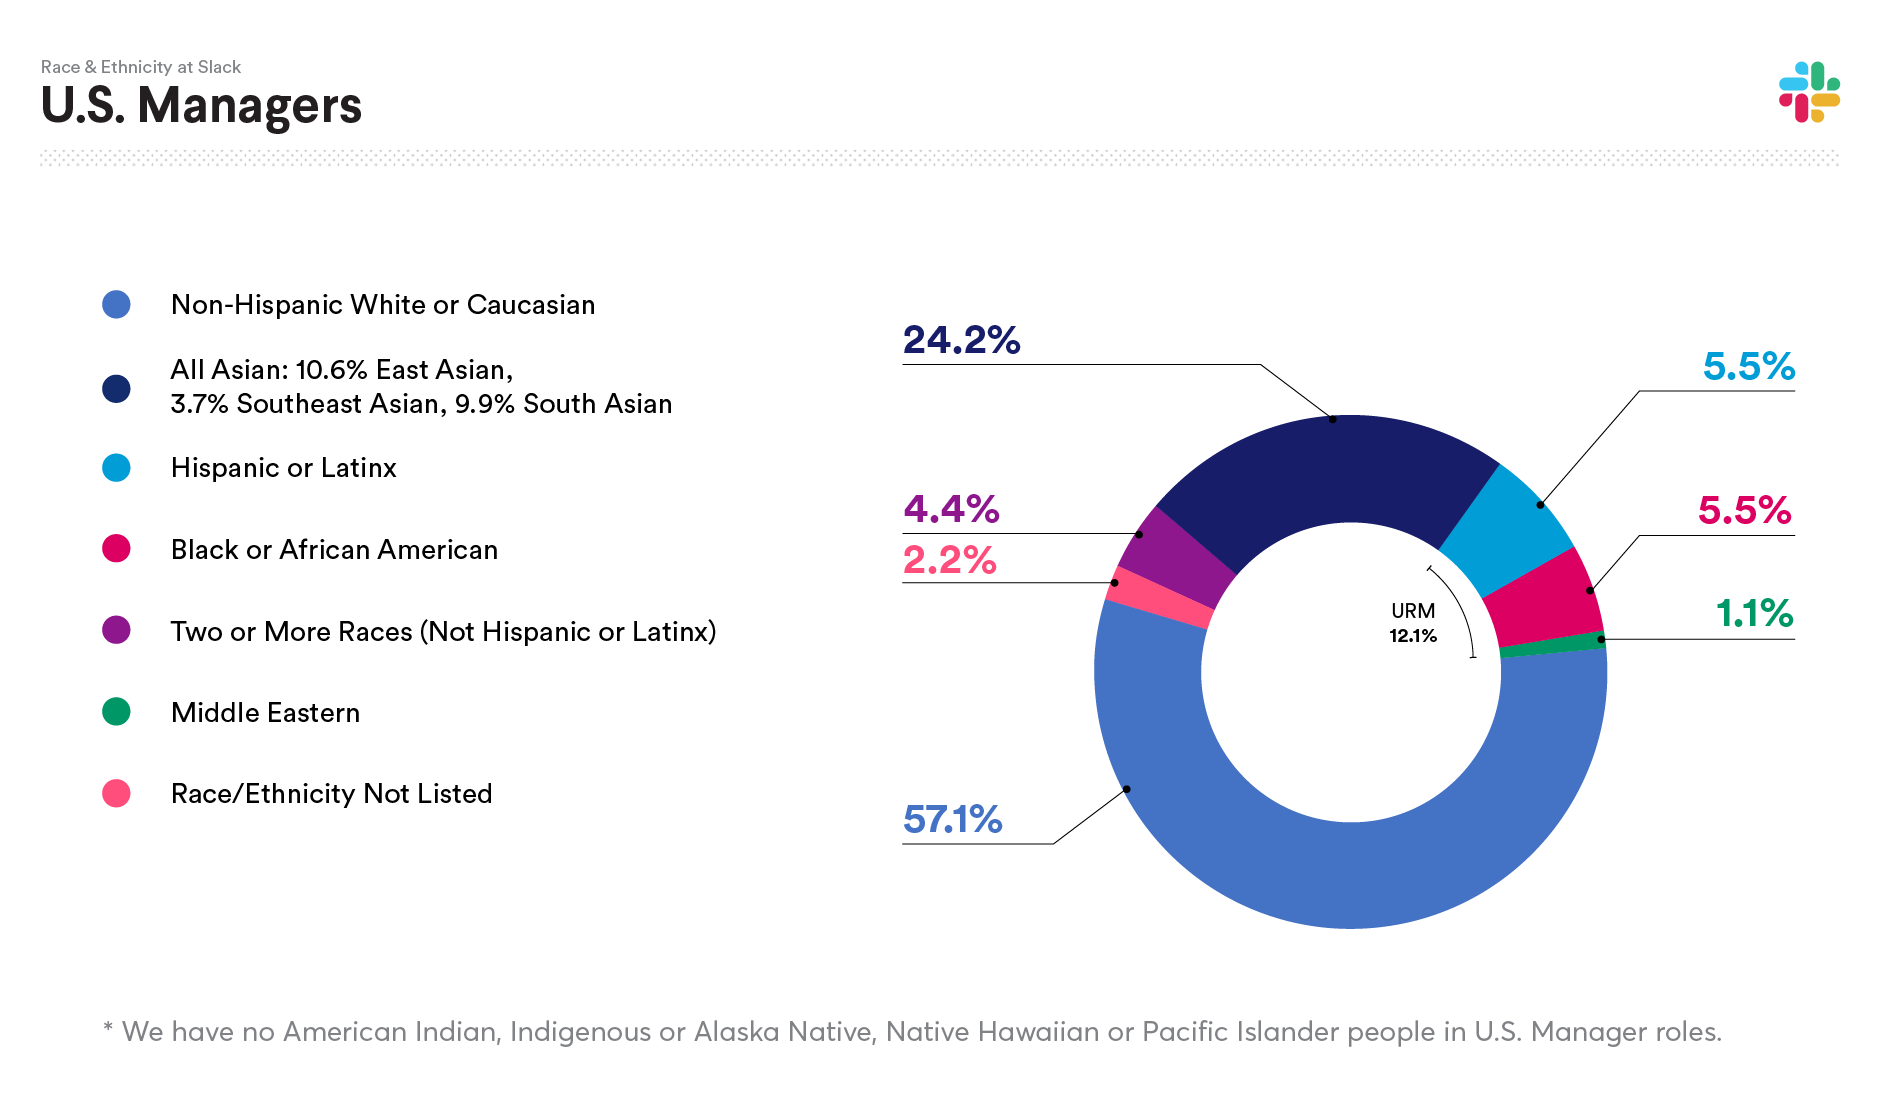 2019 Slack data on U.S. Managers Race and Ethnicity: Non-Hispanic White or Caucasian 57.1%; All Asian: 24.2%; Hispanic or Latinx 5.5%; Black or African American 5.5%; Two or more races (not Hispanic or Latinx) 4.4%; Middle Eastern 1.1%; Native Hawaiian or Pacific Islander 0.0%; American Indian, Indigenous or Alaska Native 0.0%; Race/Ethnicity not listed 2.2%